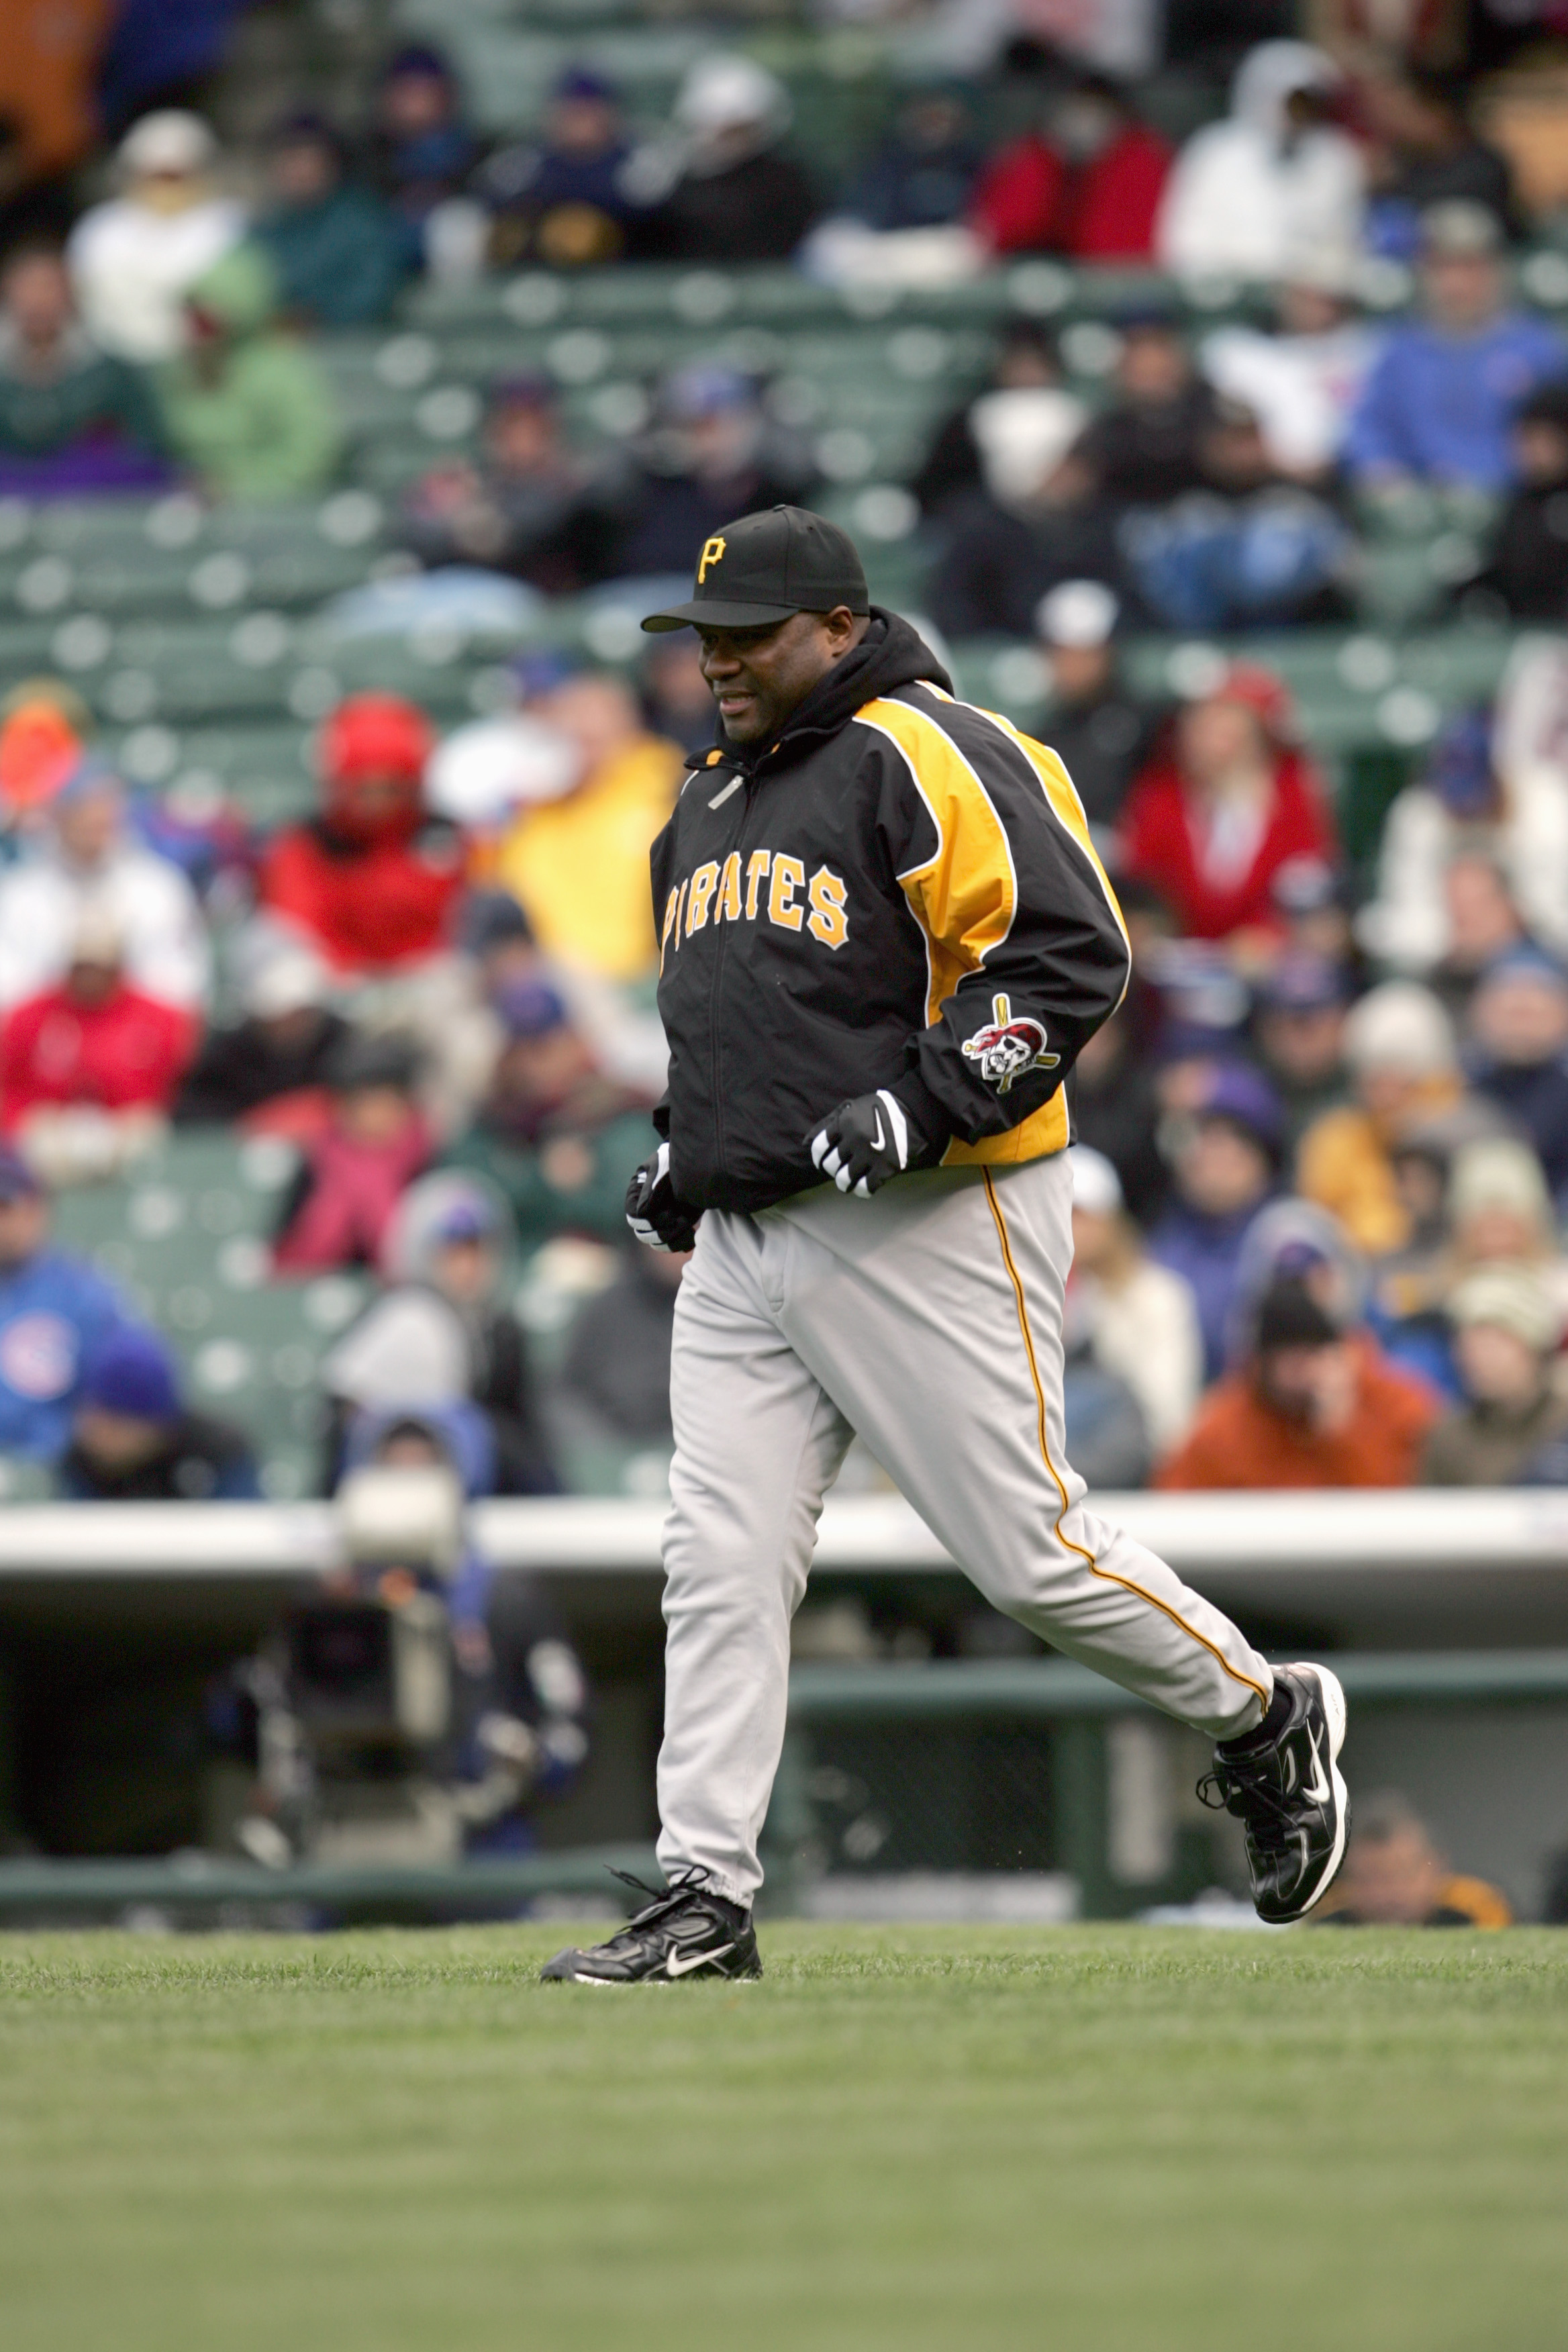 CHICAGO - APRIL 23:  Manager Lloyd McClendon of the Pittsburgh Pirates jogs to the mound during the game against the Chicago Cubs on April 23, 2005 at Wrigley Field in Chicago, Illinois. The Pirates defeated the Cubs 4-3. (Photo by Jonathan Daniel/Getty I